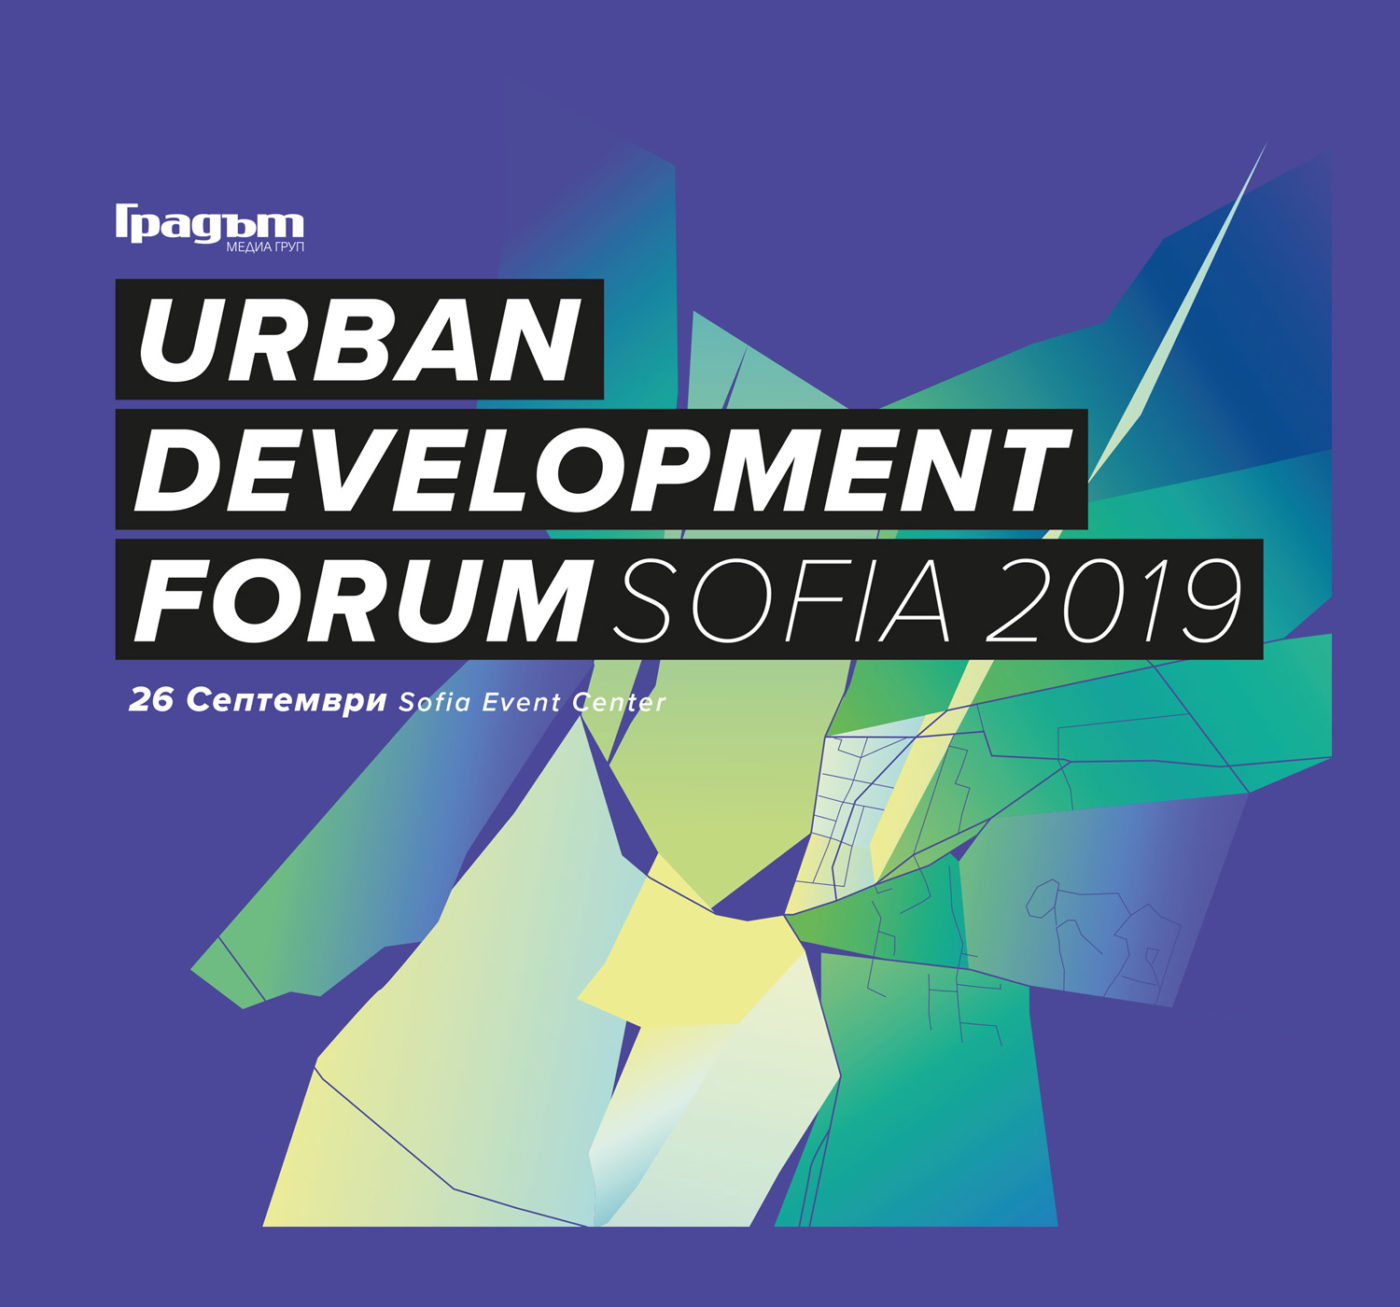 Urban Development Forum Sofia 2019